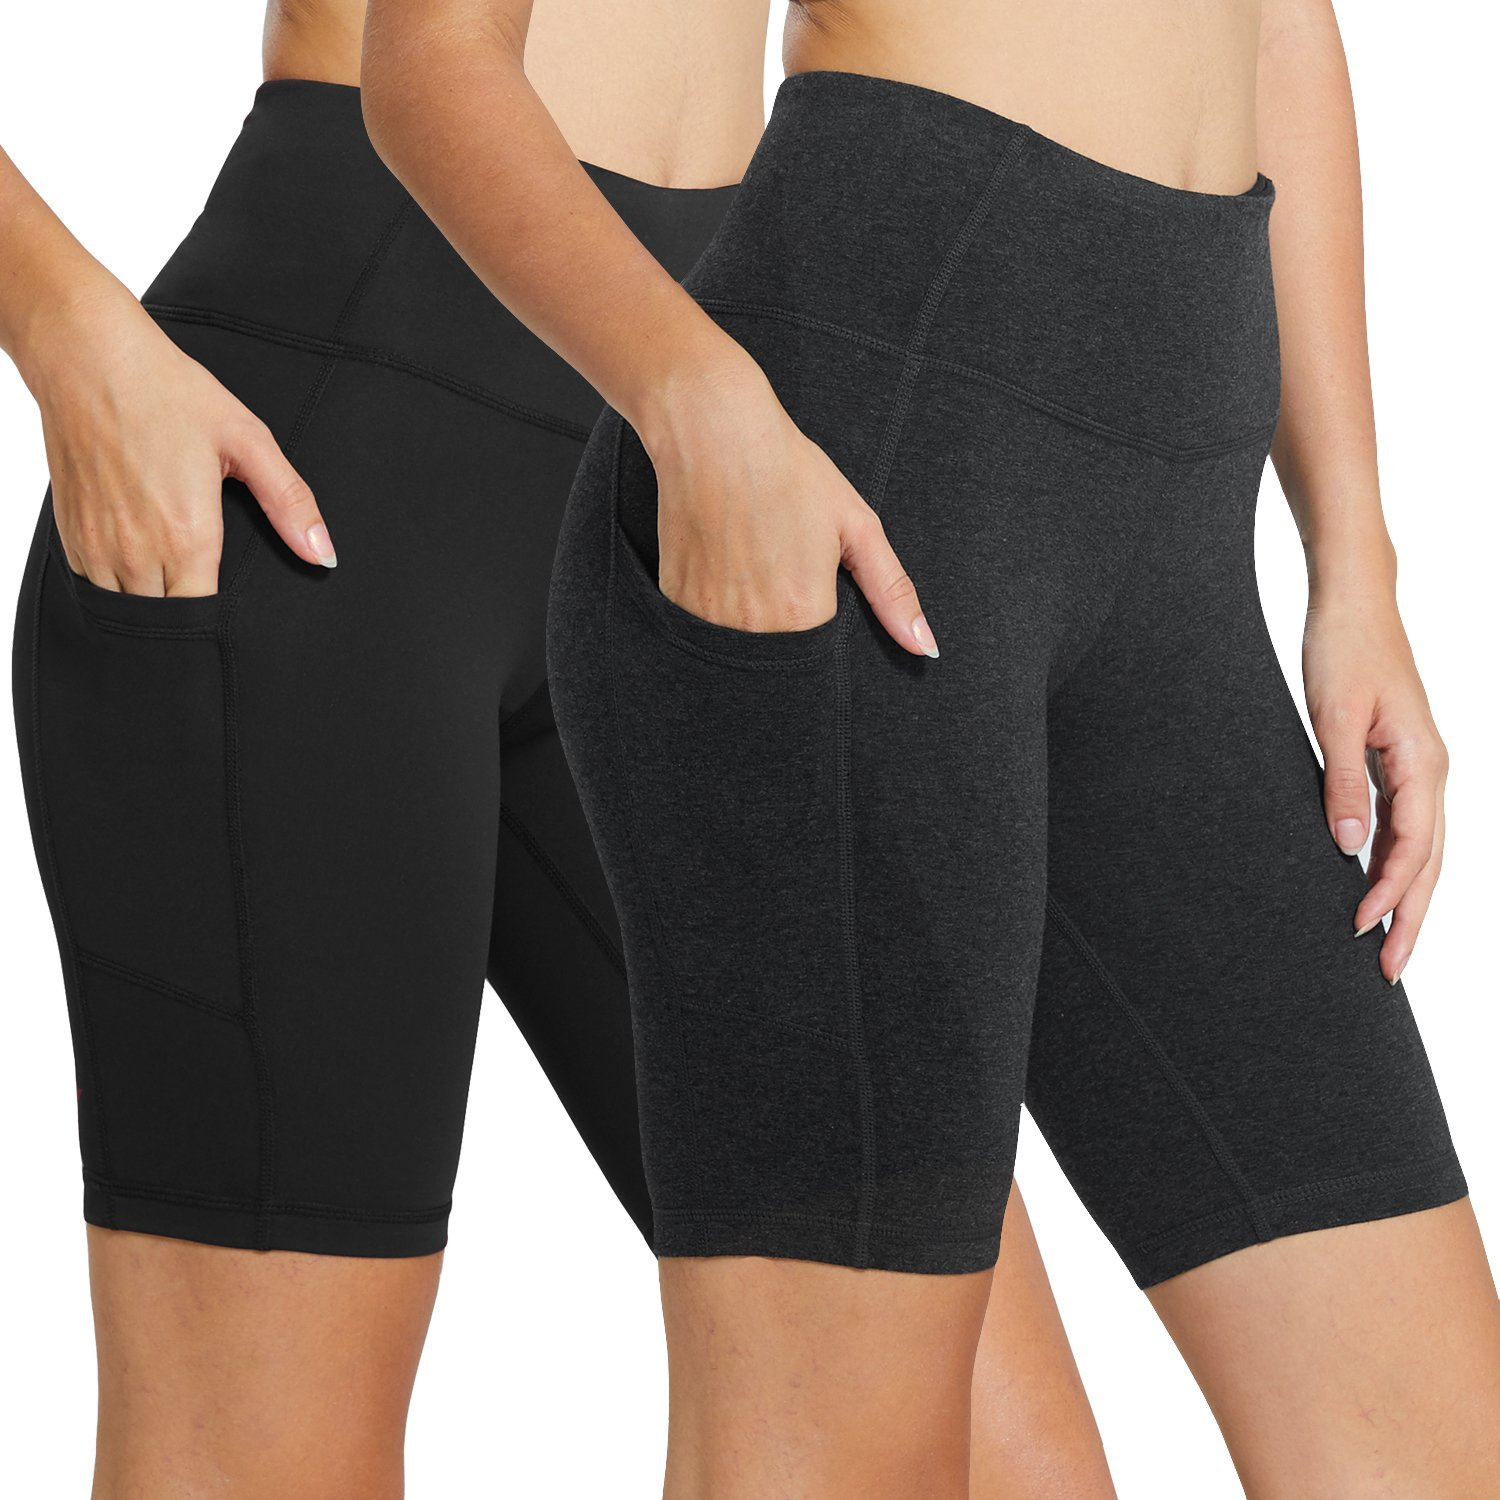 BALEAF Women's 8'' High Waist Tummy Control Workout Yoga Shorts Side Pockets 2-Pack Black/Charcoal Size M